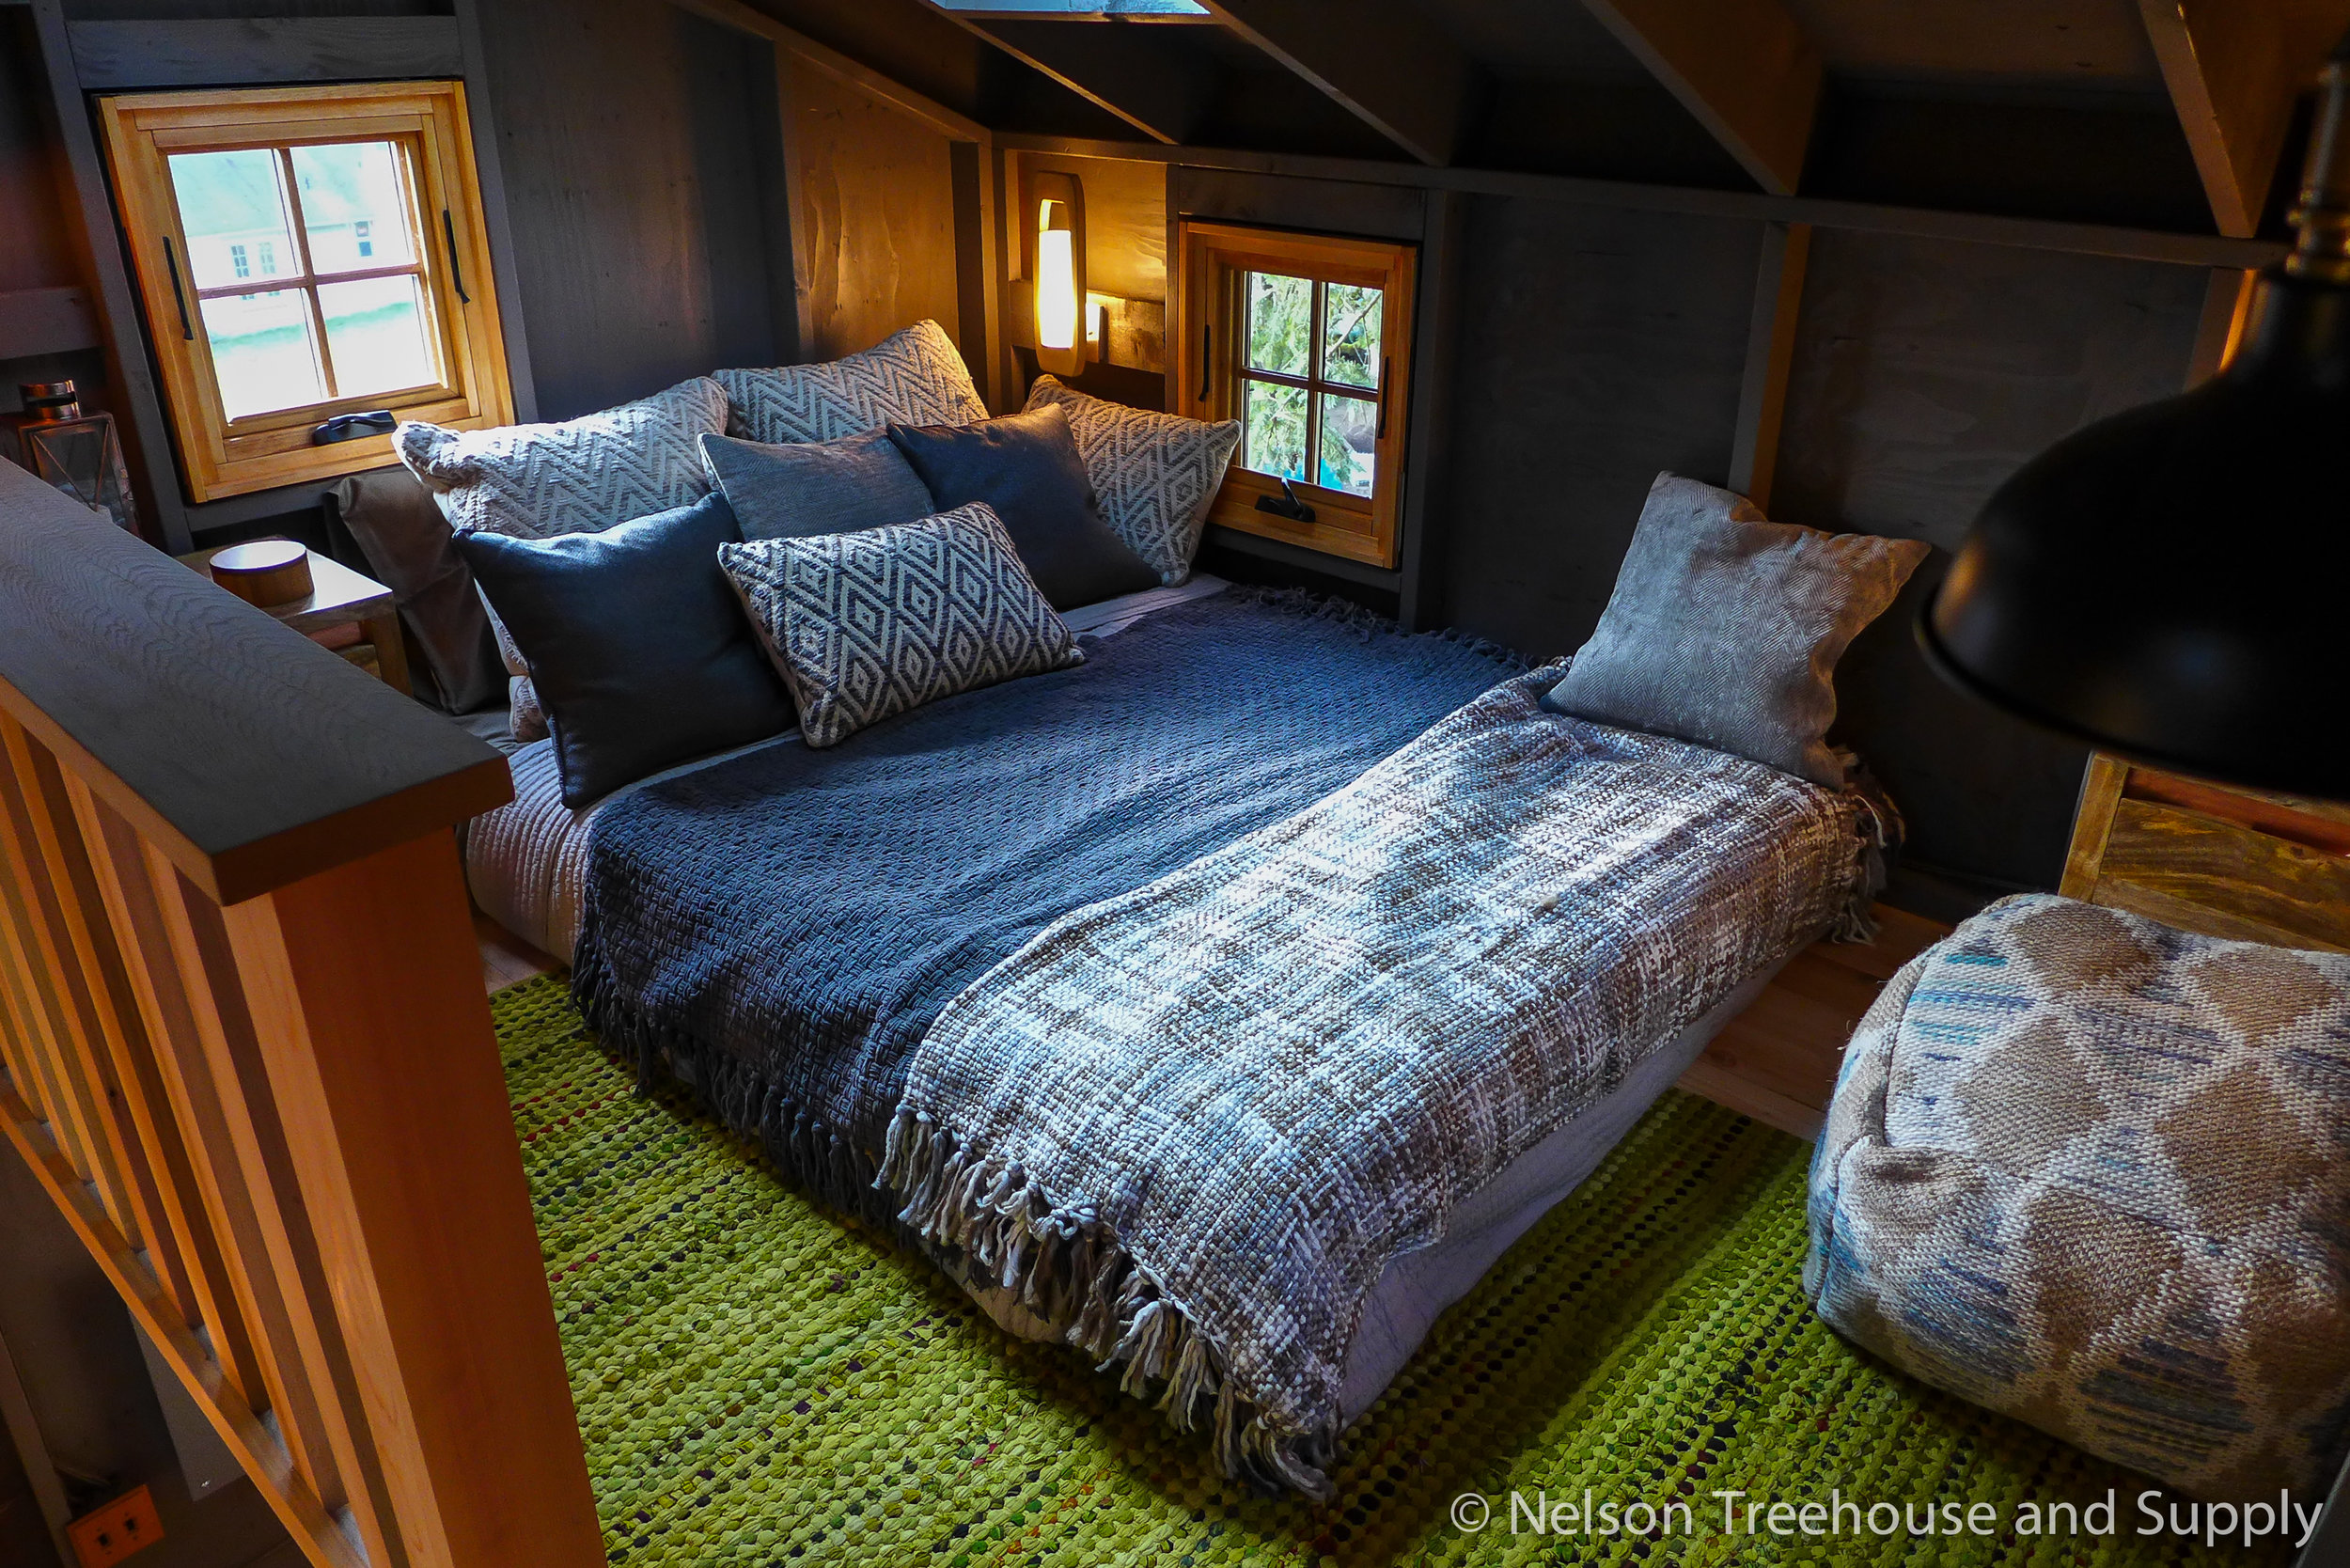 Charlie's cozy but airy loft